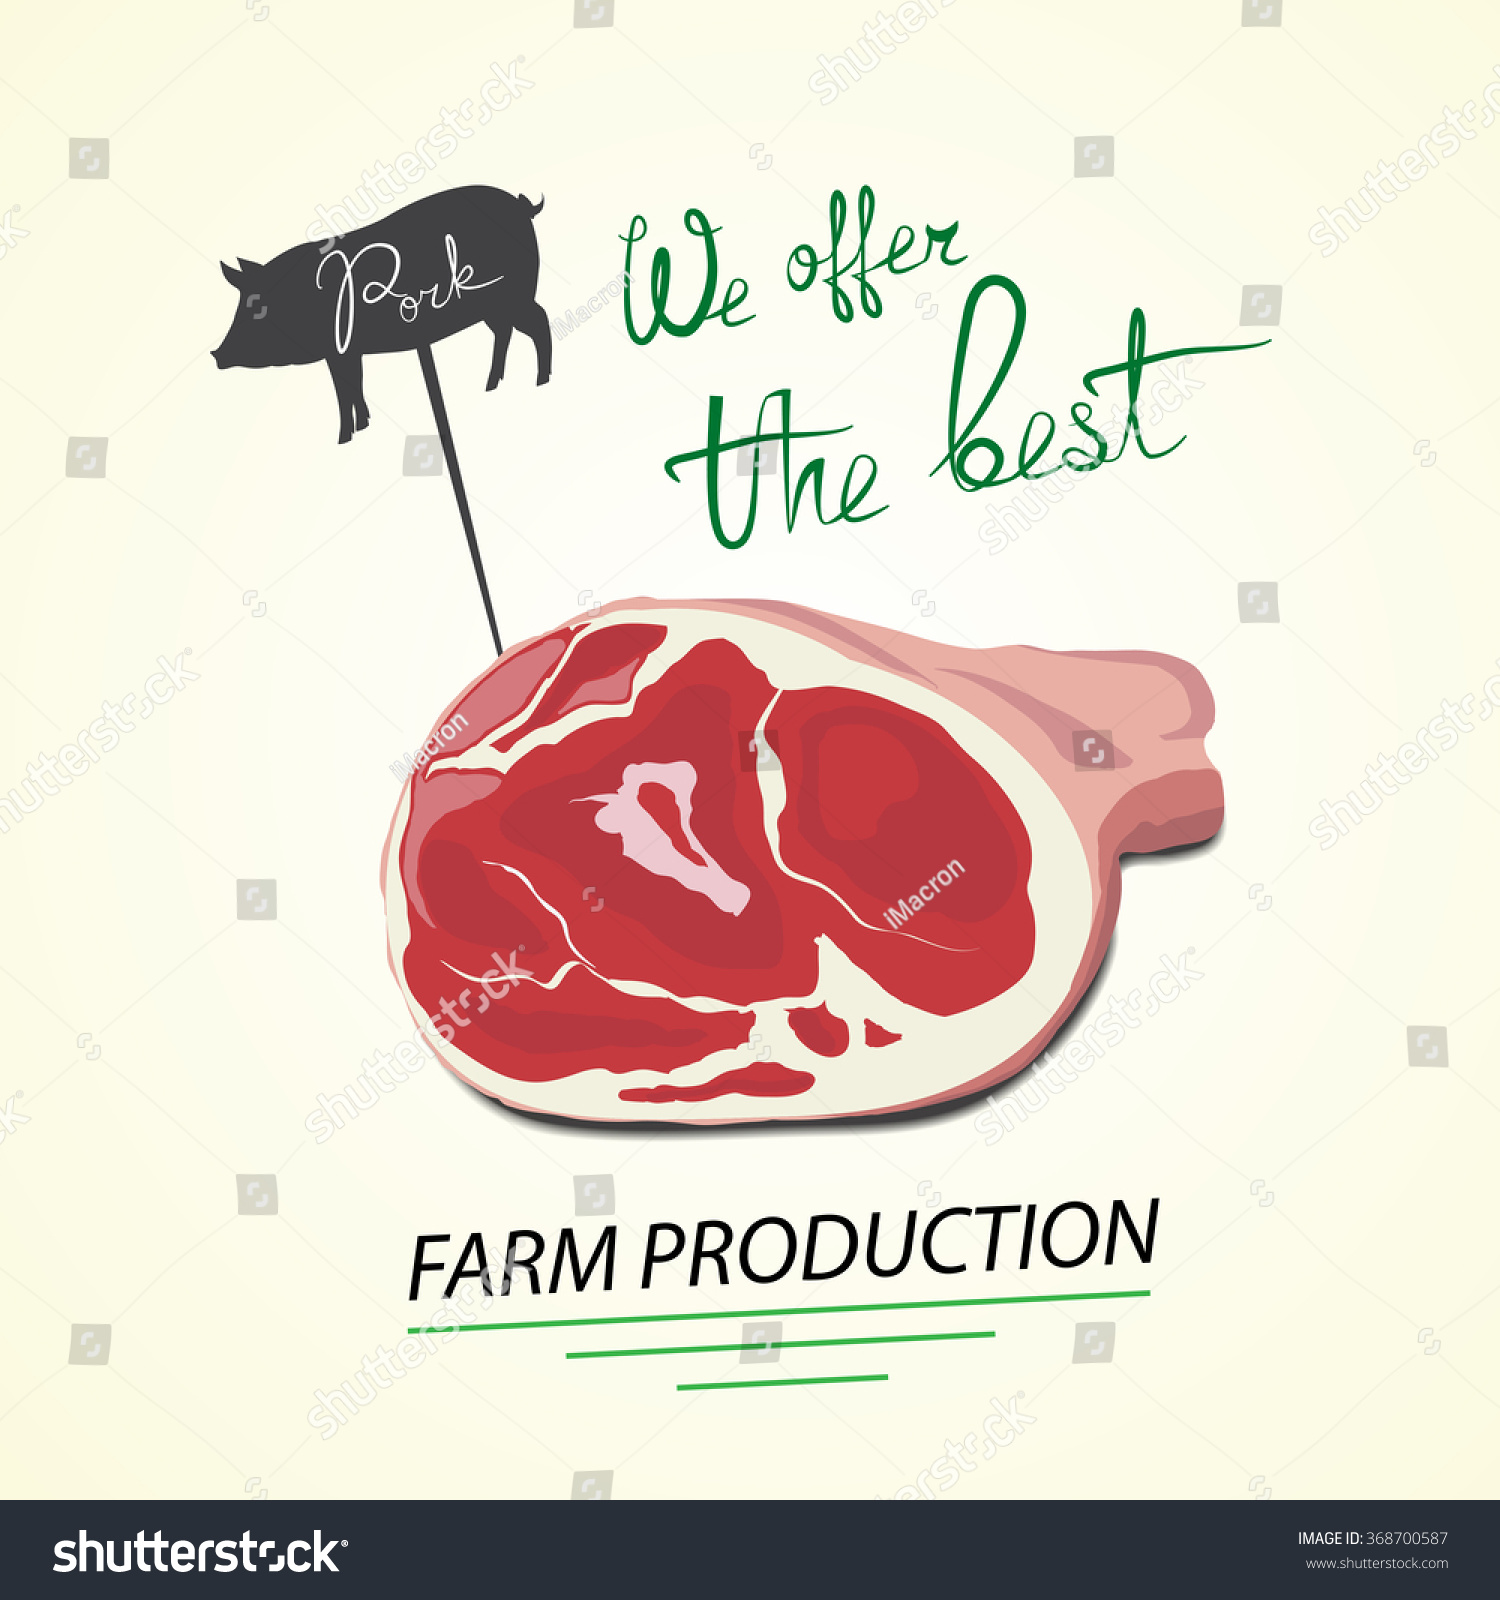 Illustration Of Pig. Pork Farm Production, Vector. Can Be Used In ...